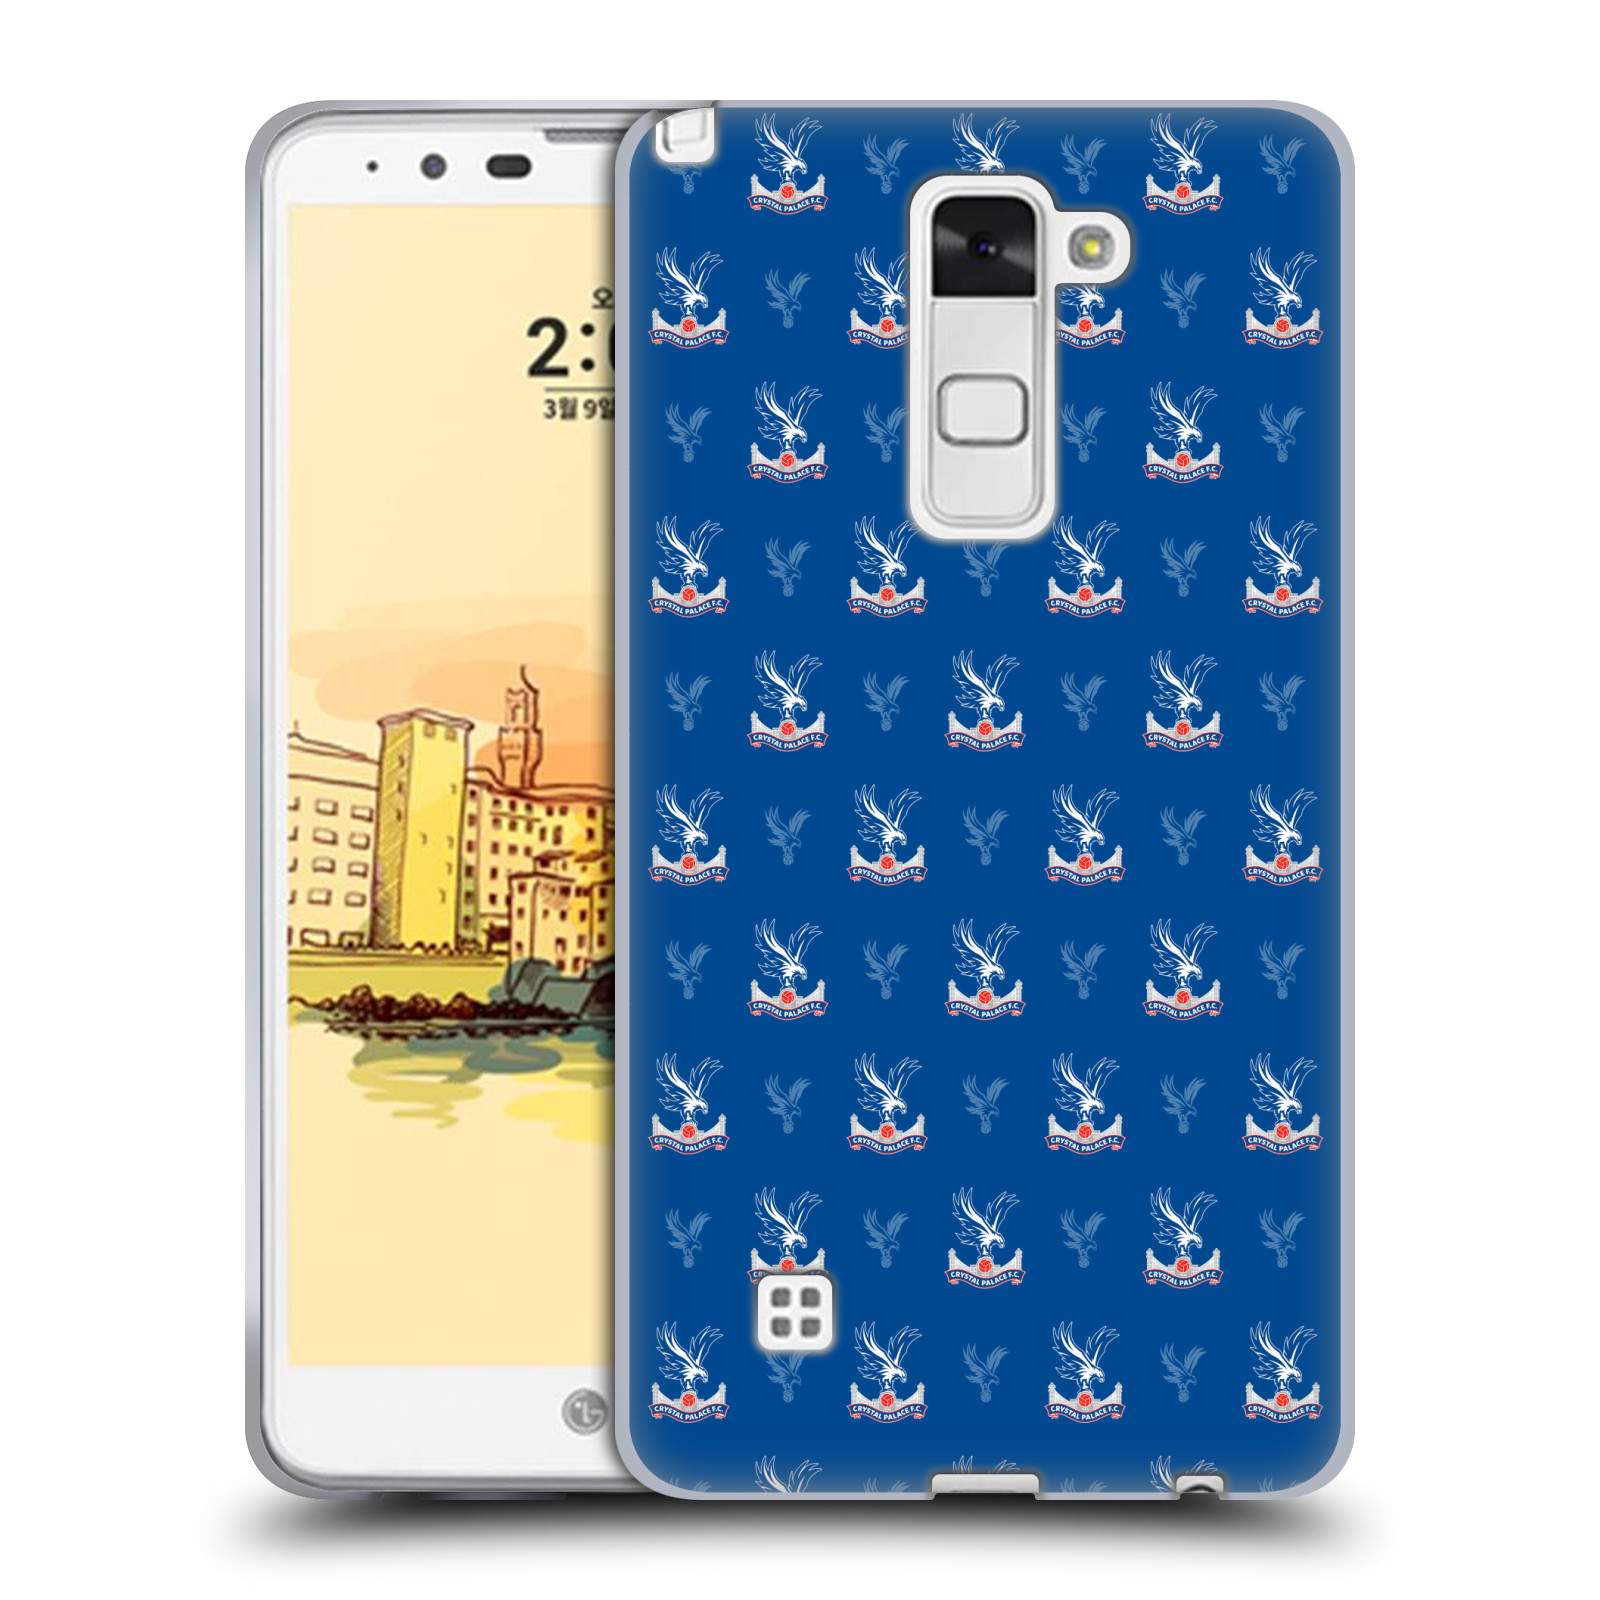 OFFICIAL-CRYSTAL-PALACE-FC-2017-18-CREST-AND-PATTERNS-GEL-CASE-FOR-LG-PHONES-3